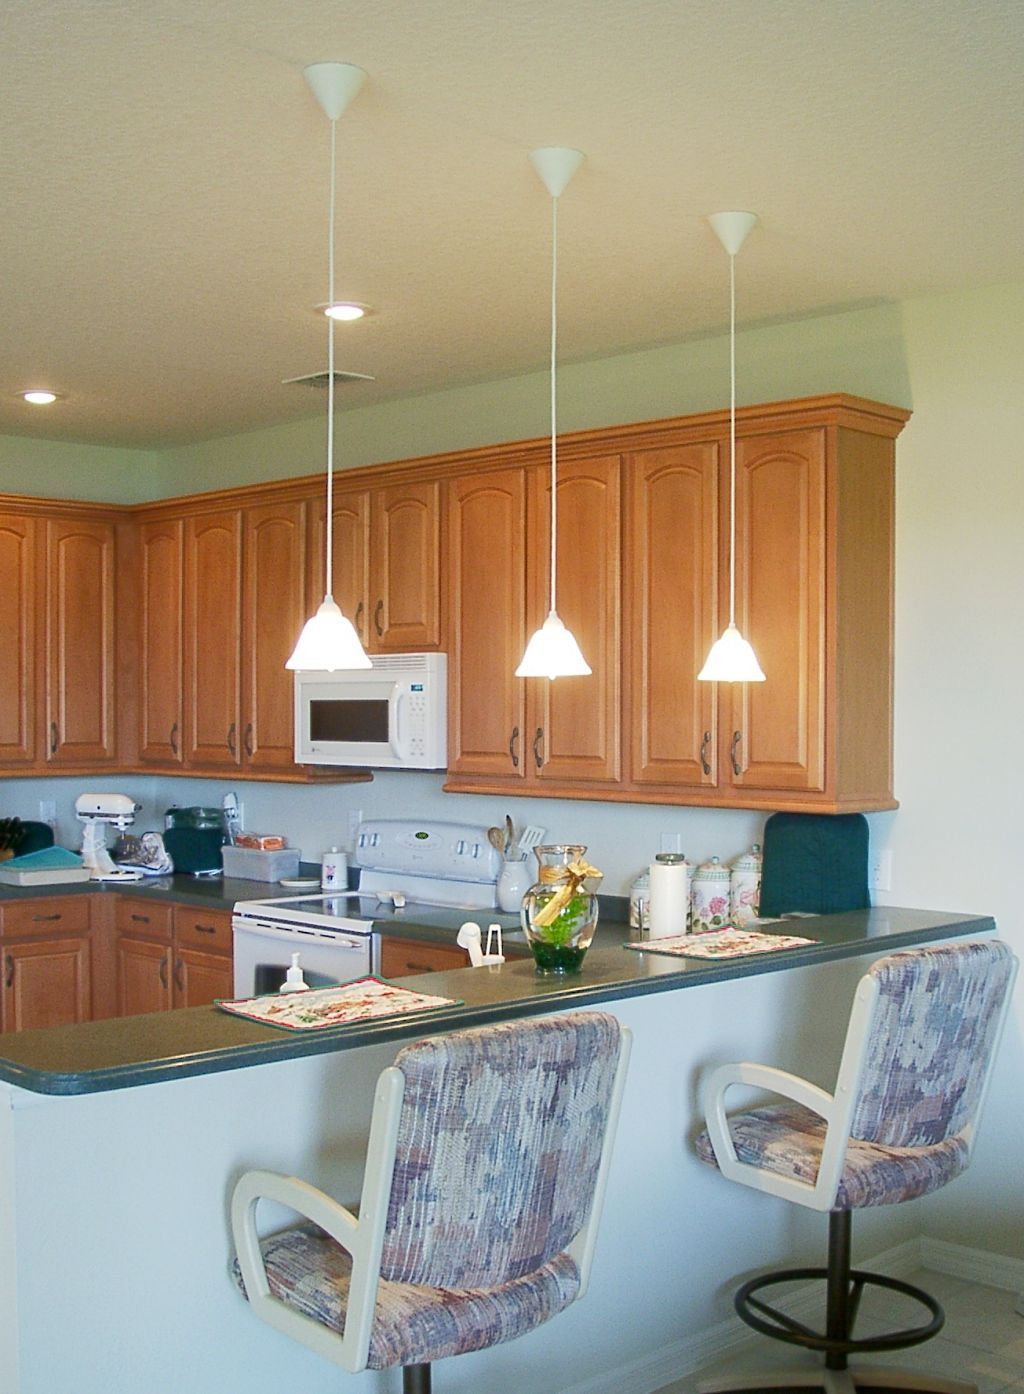 Amazing Mini Pendant Lights Over Kitchen Island - Kitchens with pendant lights over island